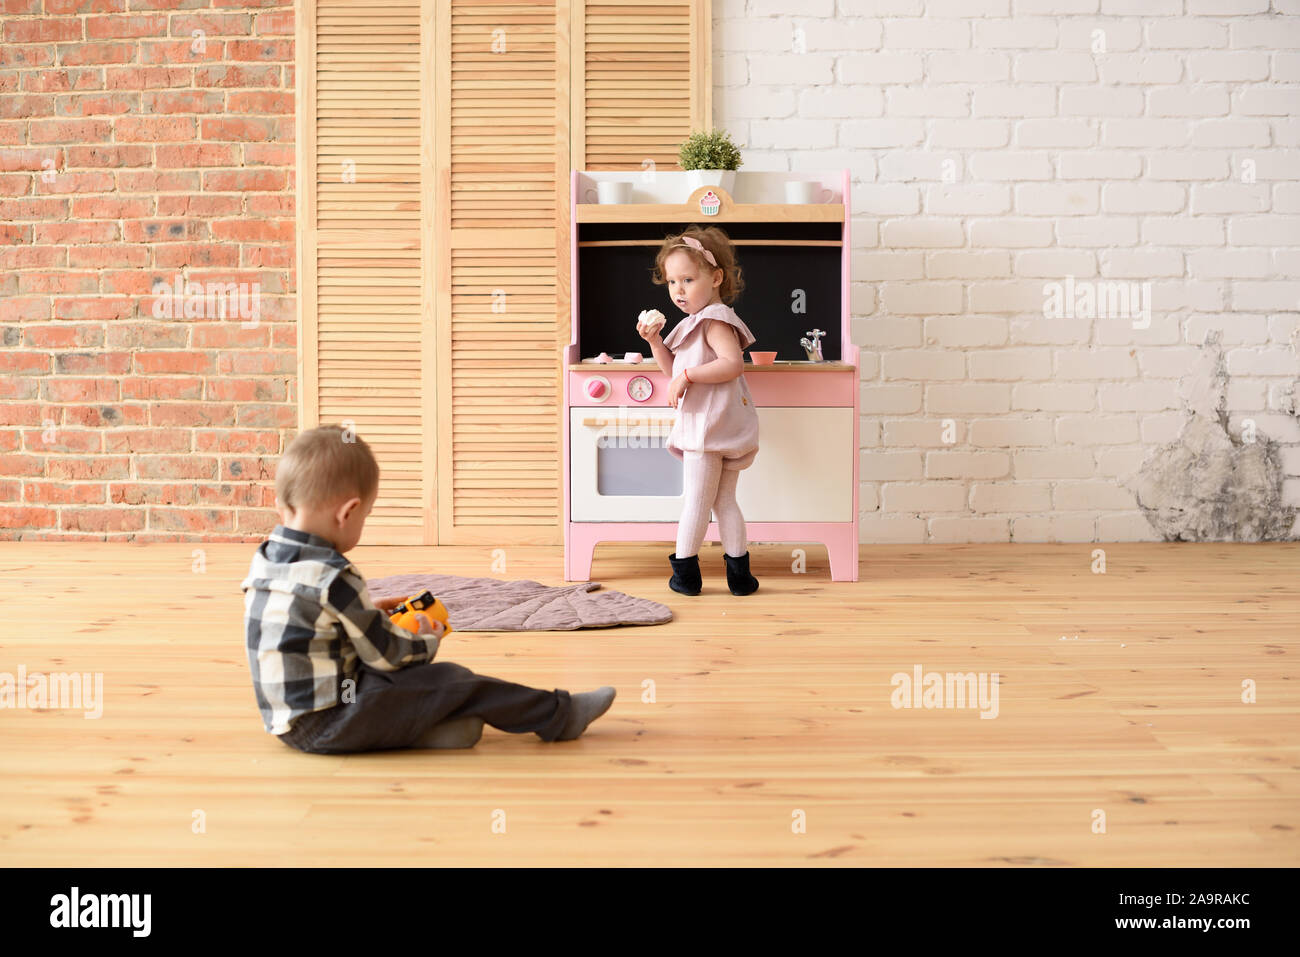 Family and children concept. Toddler boy playing on floor and cute little girl eating sweets at play kitchen in big empty room copy space Stock Photo